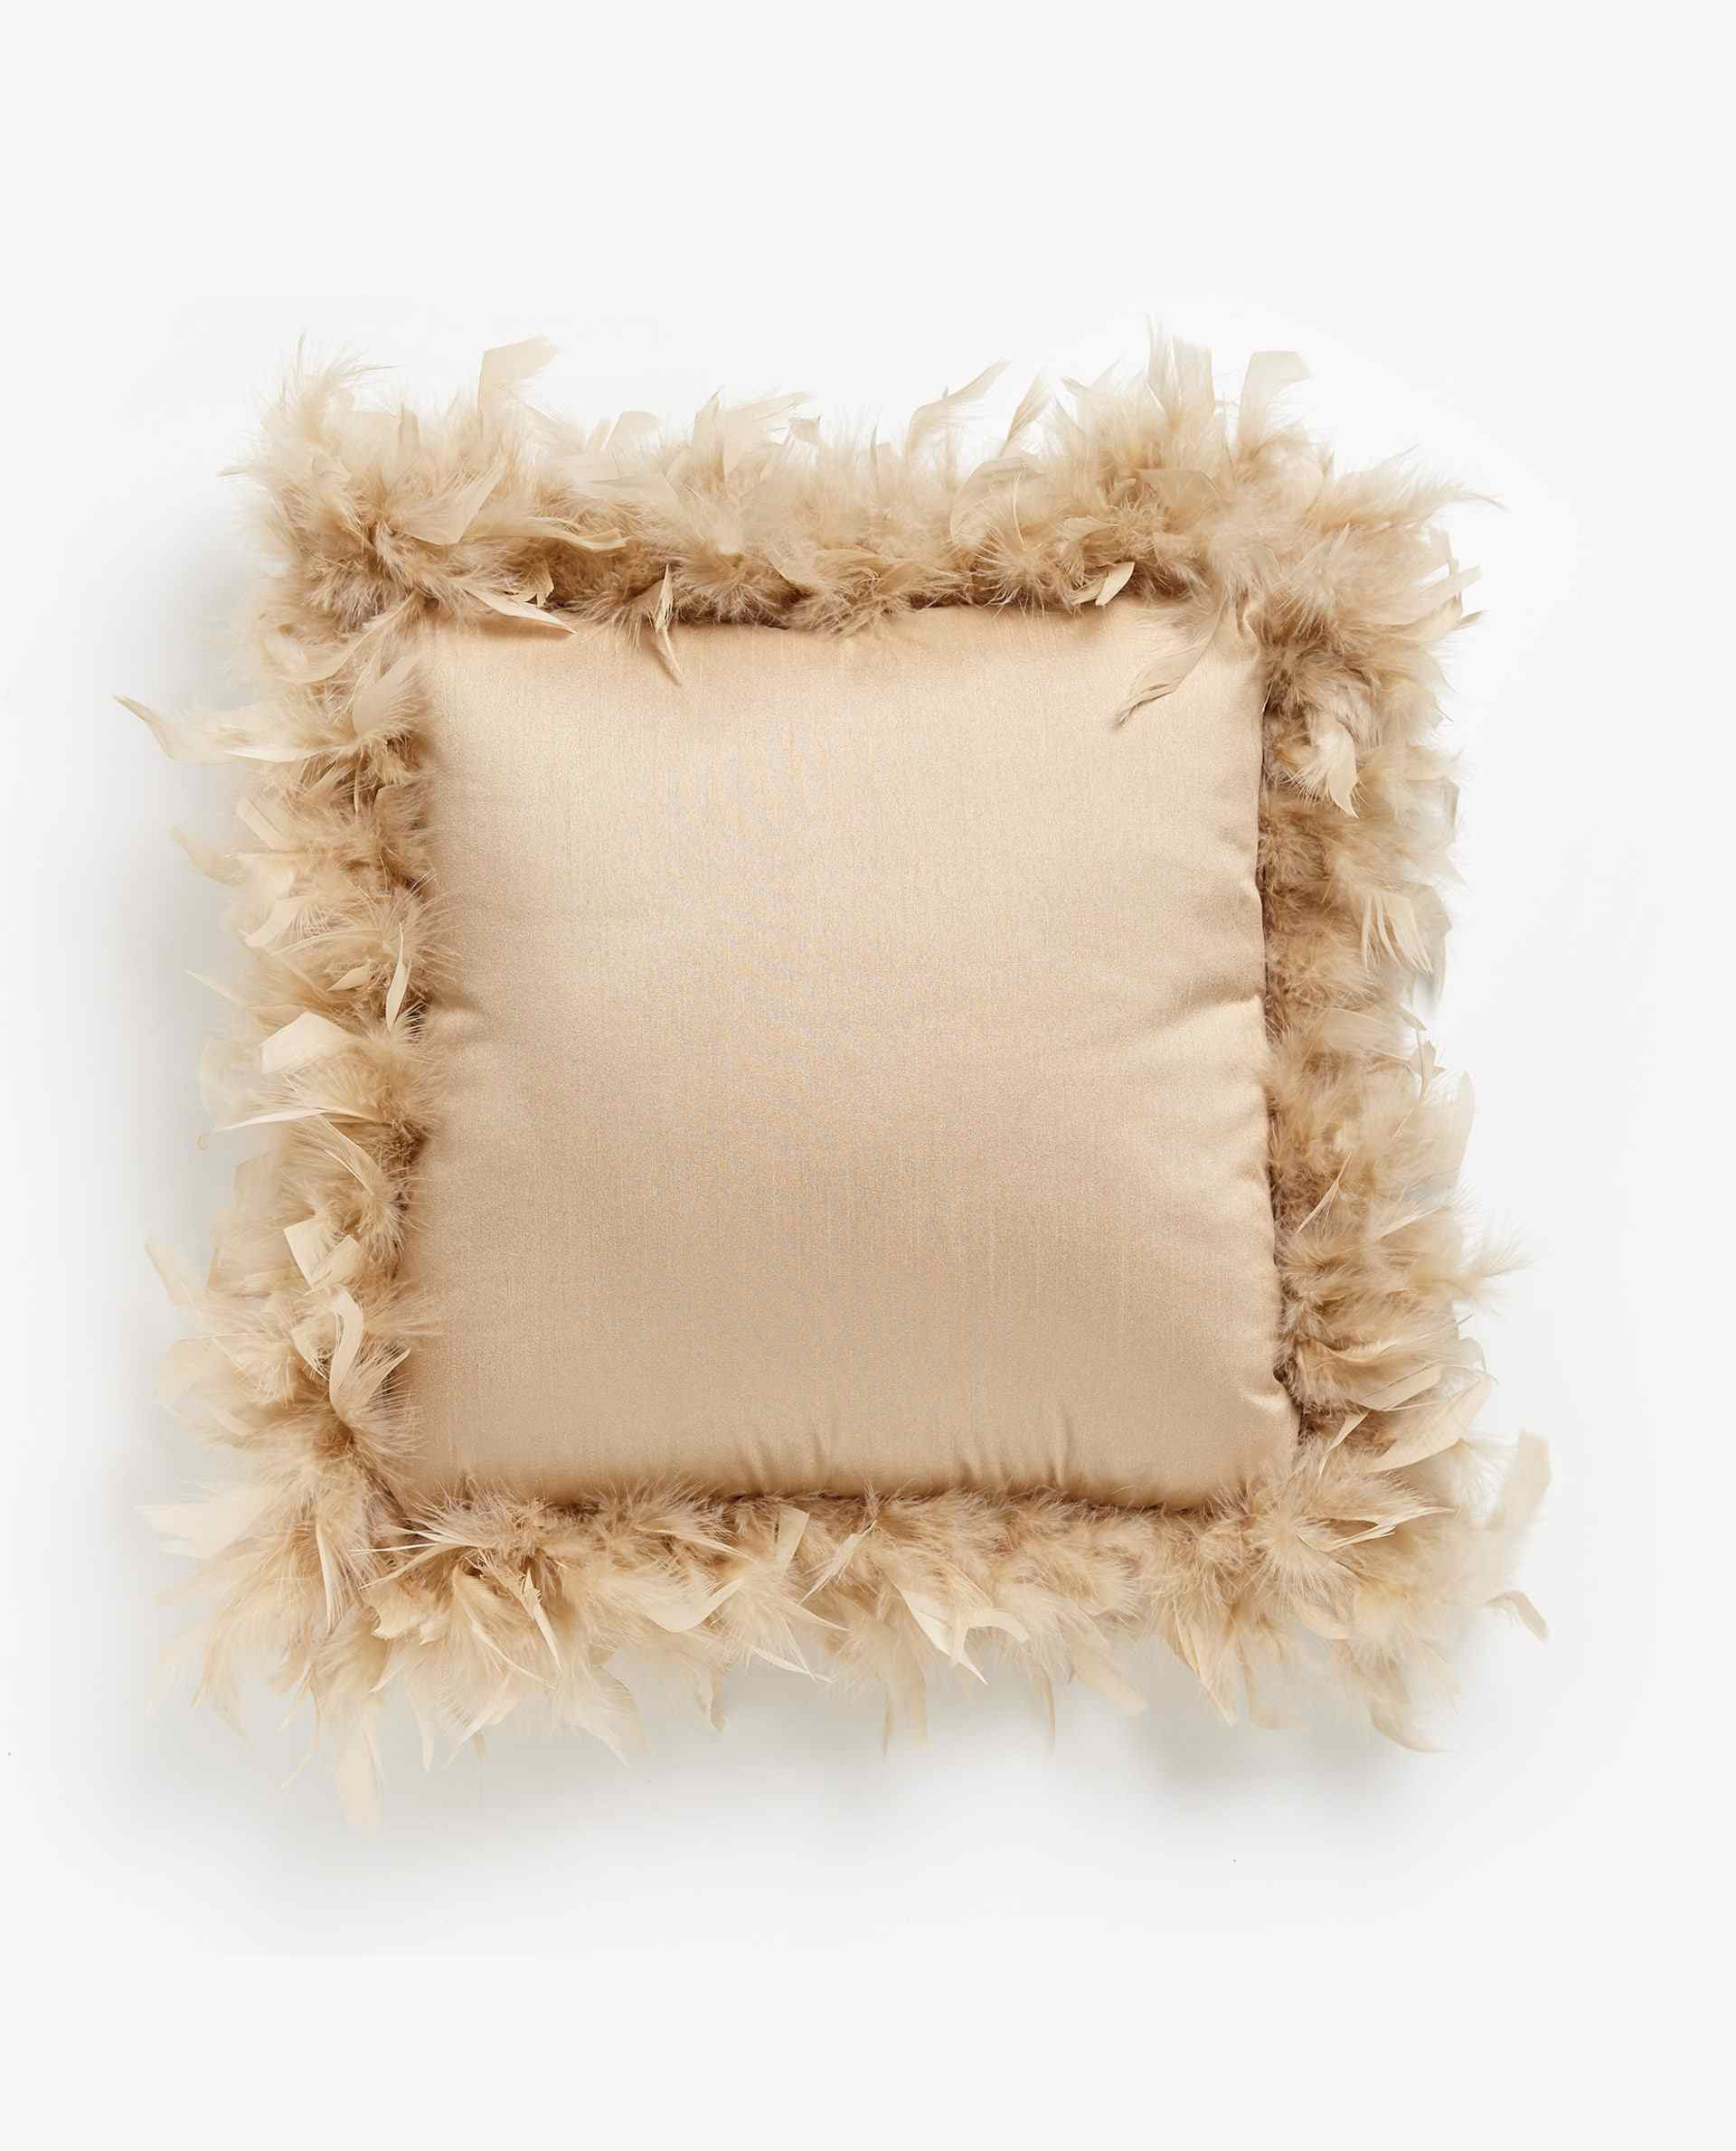 Throw Pillow with Feathers